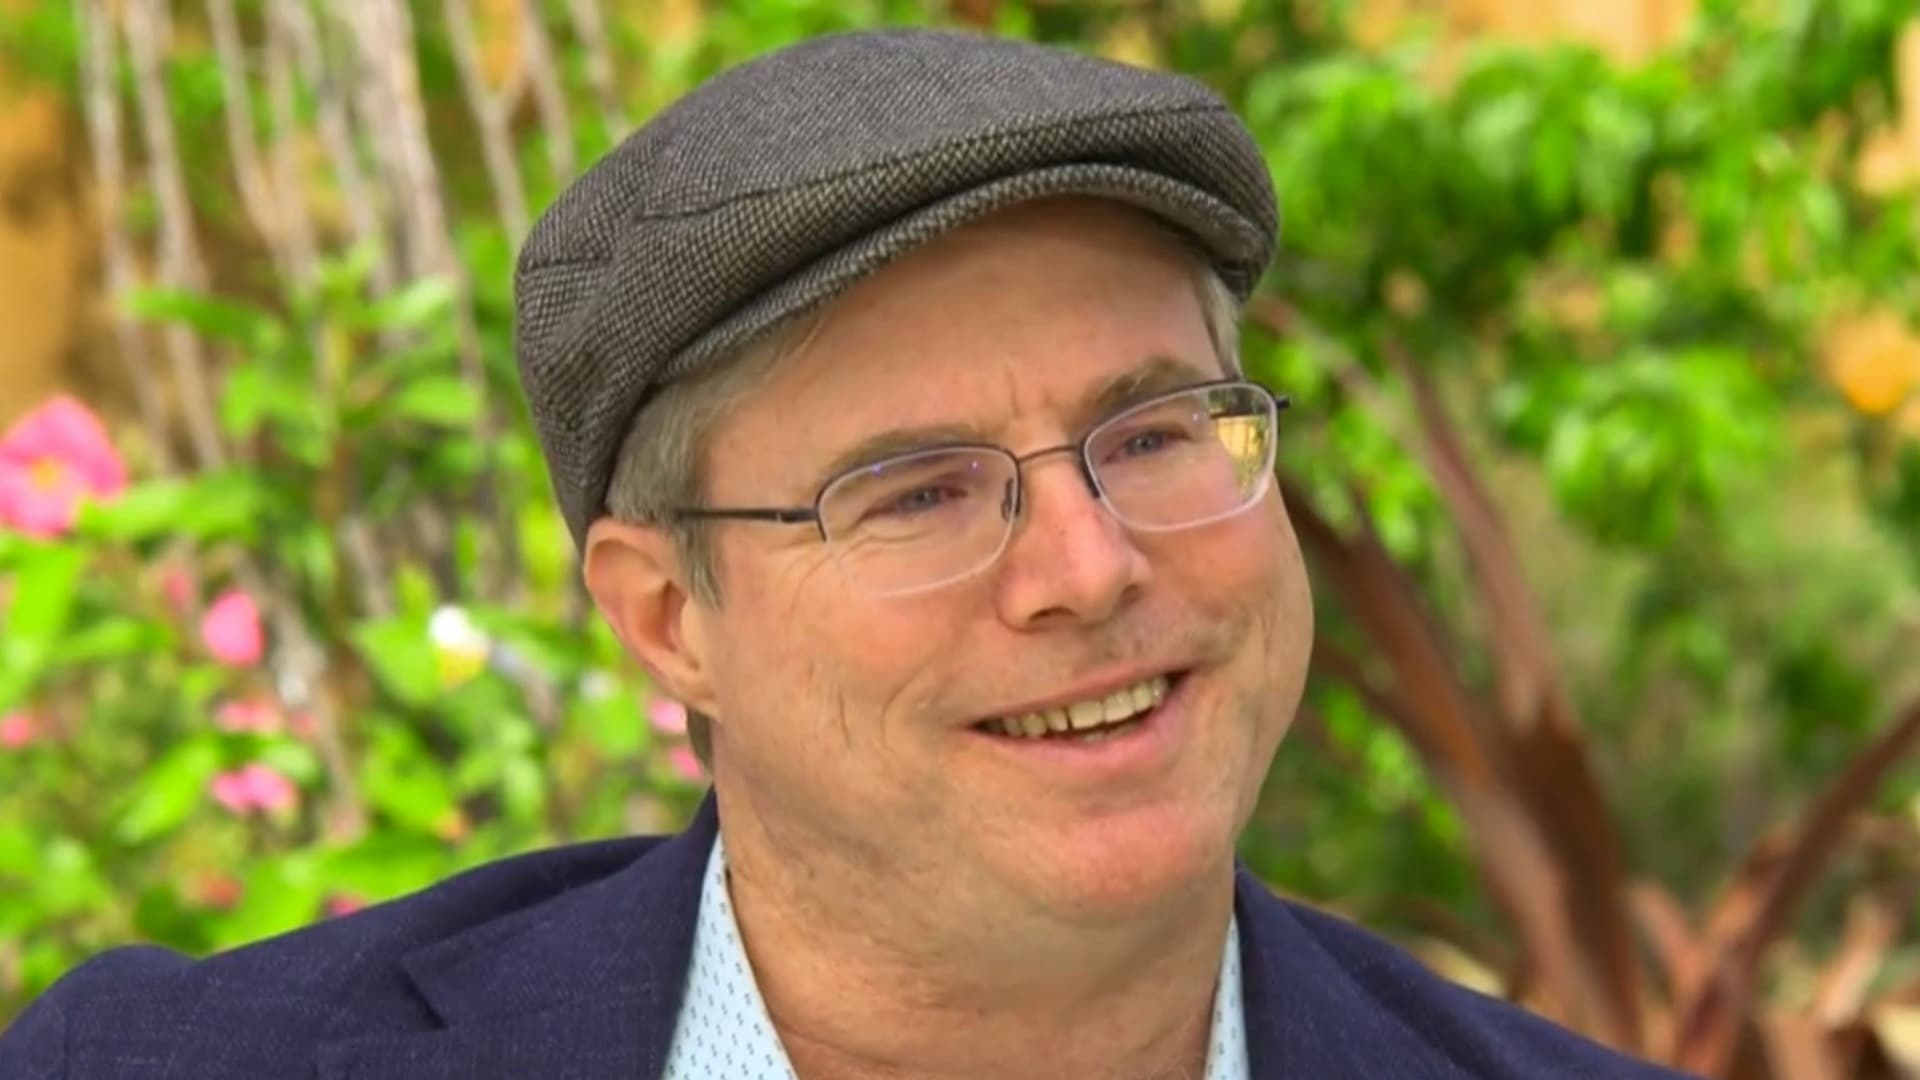 Andy Weir, Andy Weir Books, Anthologies, Bestsellers, Crime Fiction, Cyberpunk, Fiction, Heists, Mysteries, Randomize, Science Fiction, Technothrillers, Teen and Young Adult